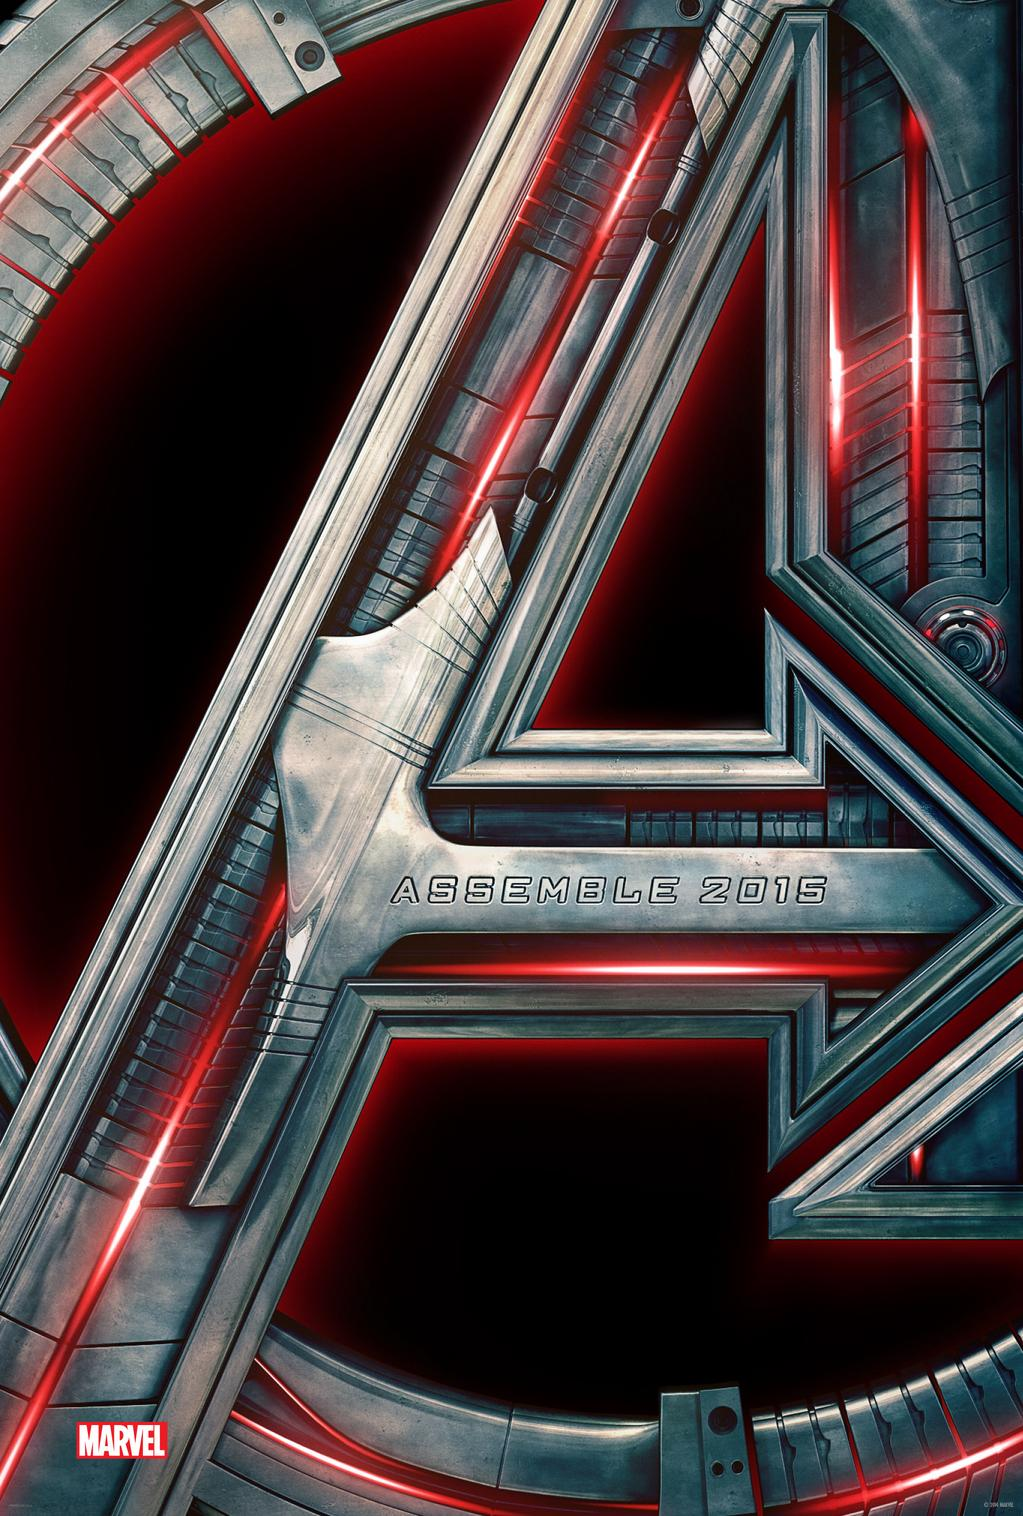 Avengers 2: Age of Ultron (trailer)